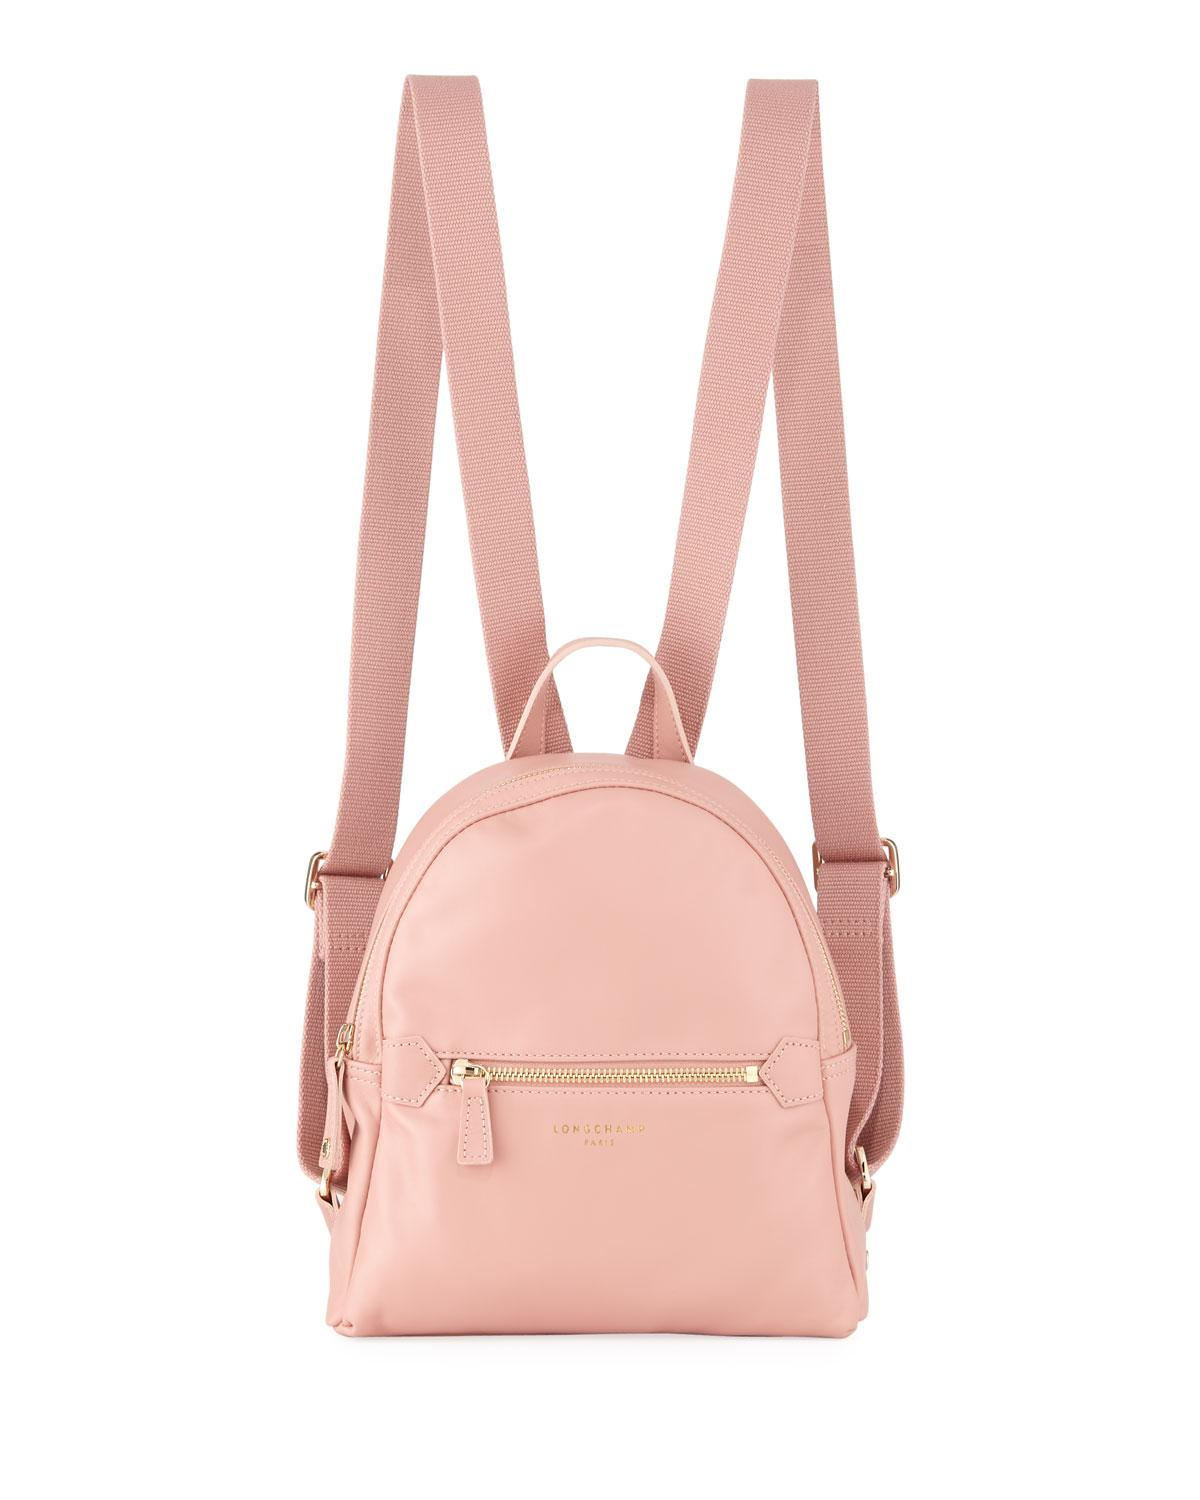 36eeb5f42393 Longchamp 2.0 Small Leather Backpack Bag in Pink - Lyst